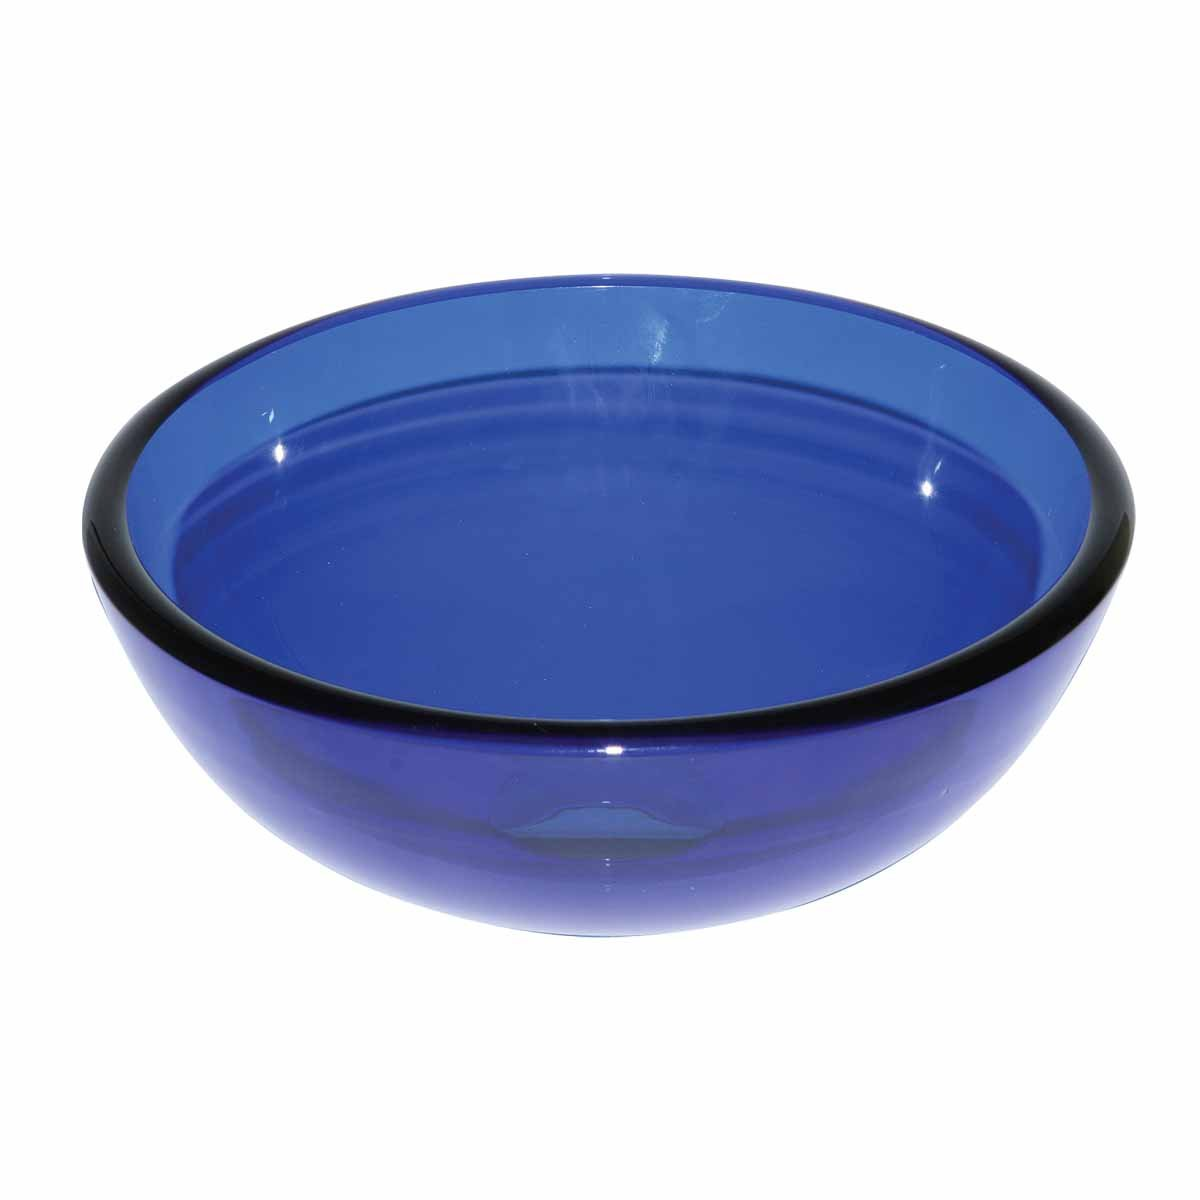 Blue Glass Vessel Sink With Drain, Mounting Ring, Tempered Glass Mini Bowl  Sink | Renovatoru0027s Supply     Amazon.com